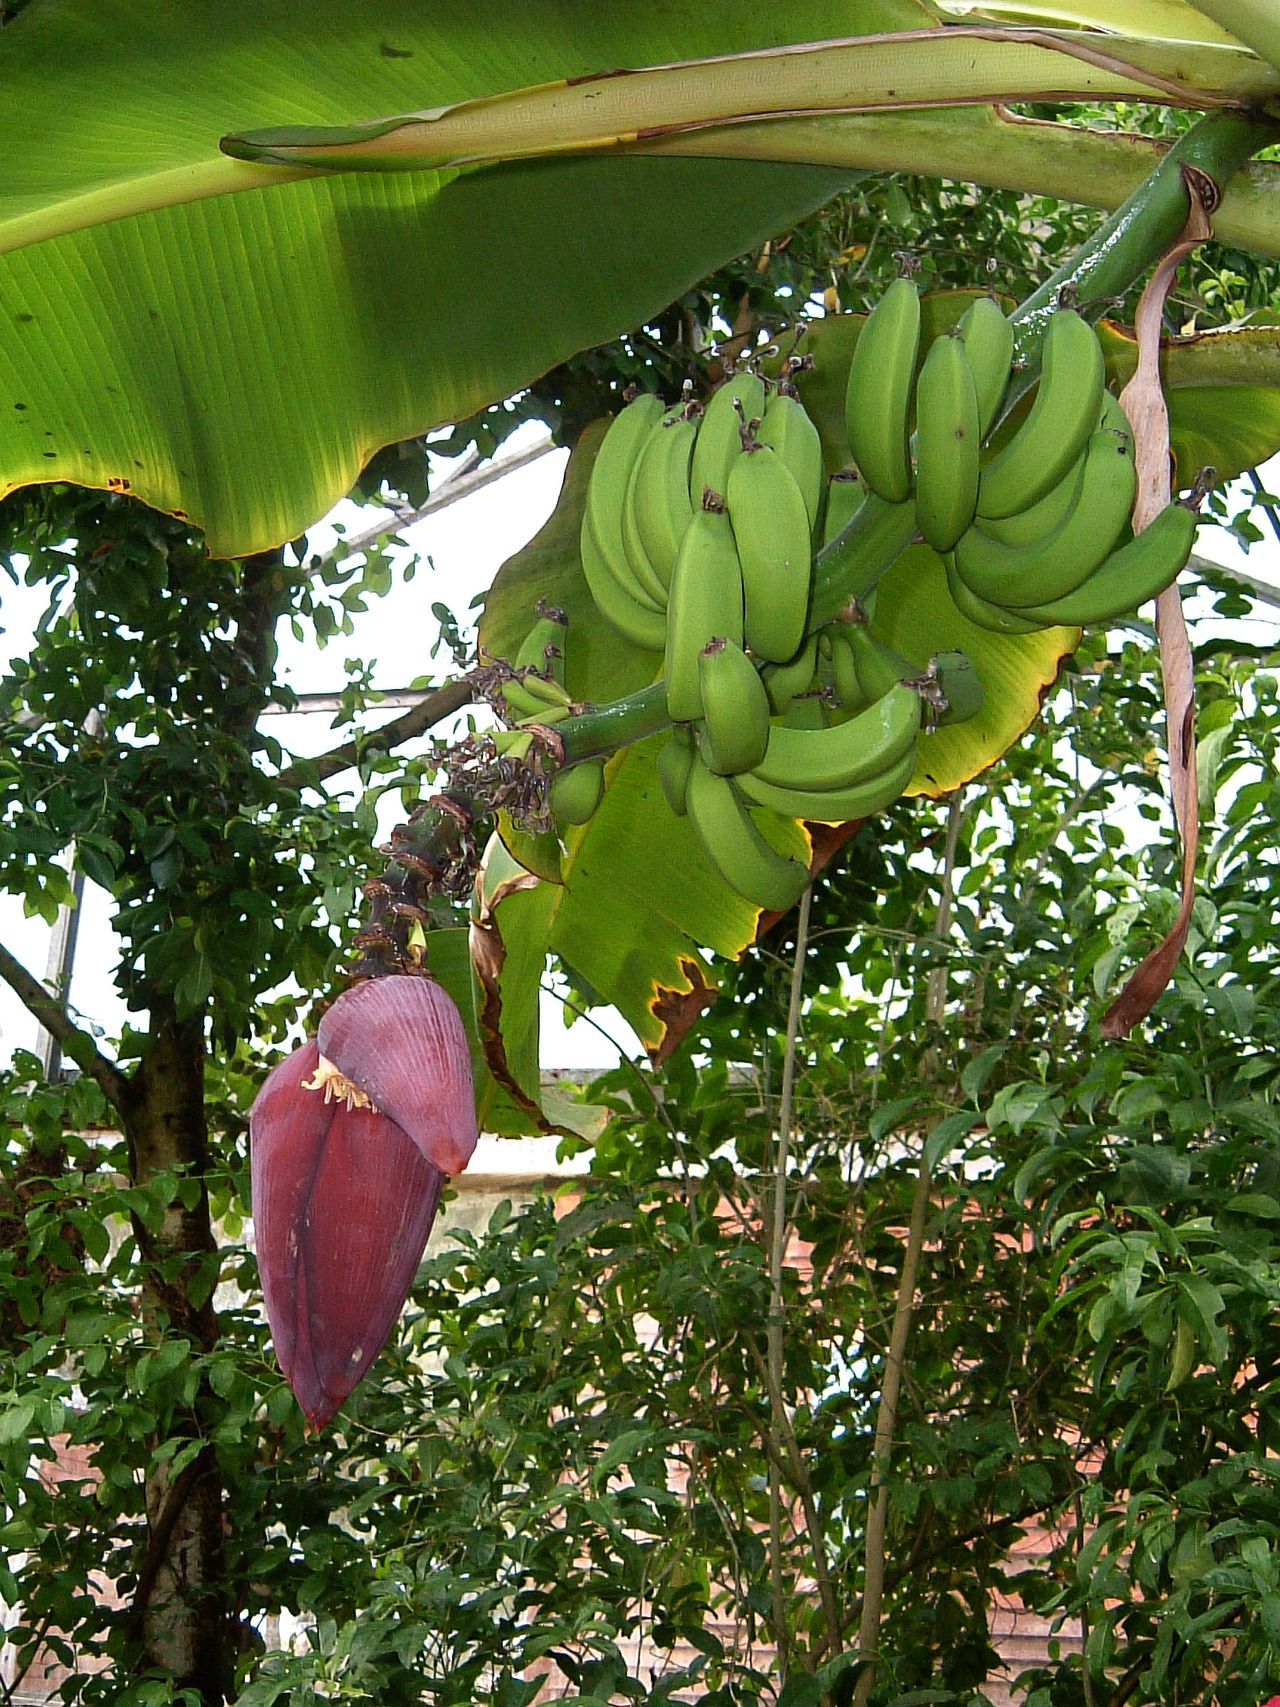 Banana Hand ~ Africa Agriculture Banana Banana Tree Beauty In Nature Day Durban Flower Food Food And Drink Freshness Fruit Green Color Growth Healthy Eating Leaf Low Angle View Natal Nature No People Outdoors Tree Tropical Climate Tropical Paradise Tropical Plants